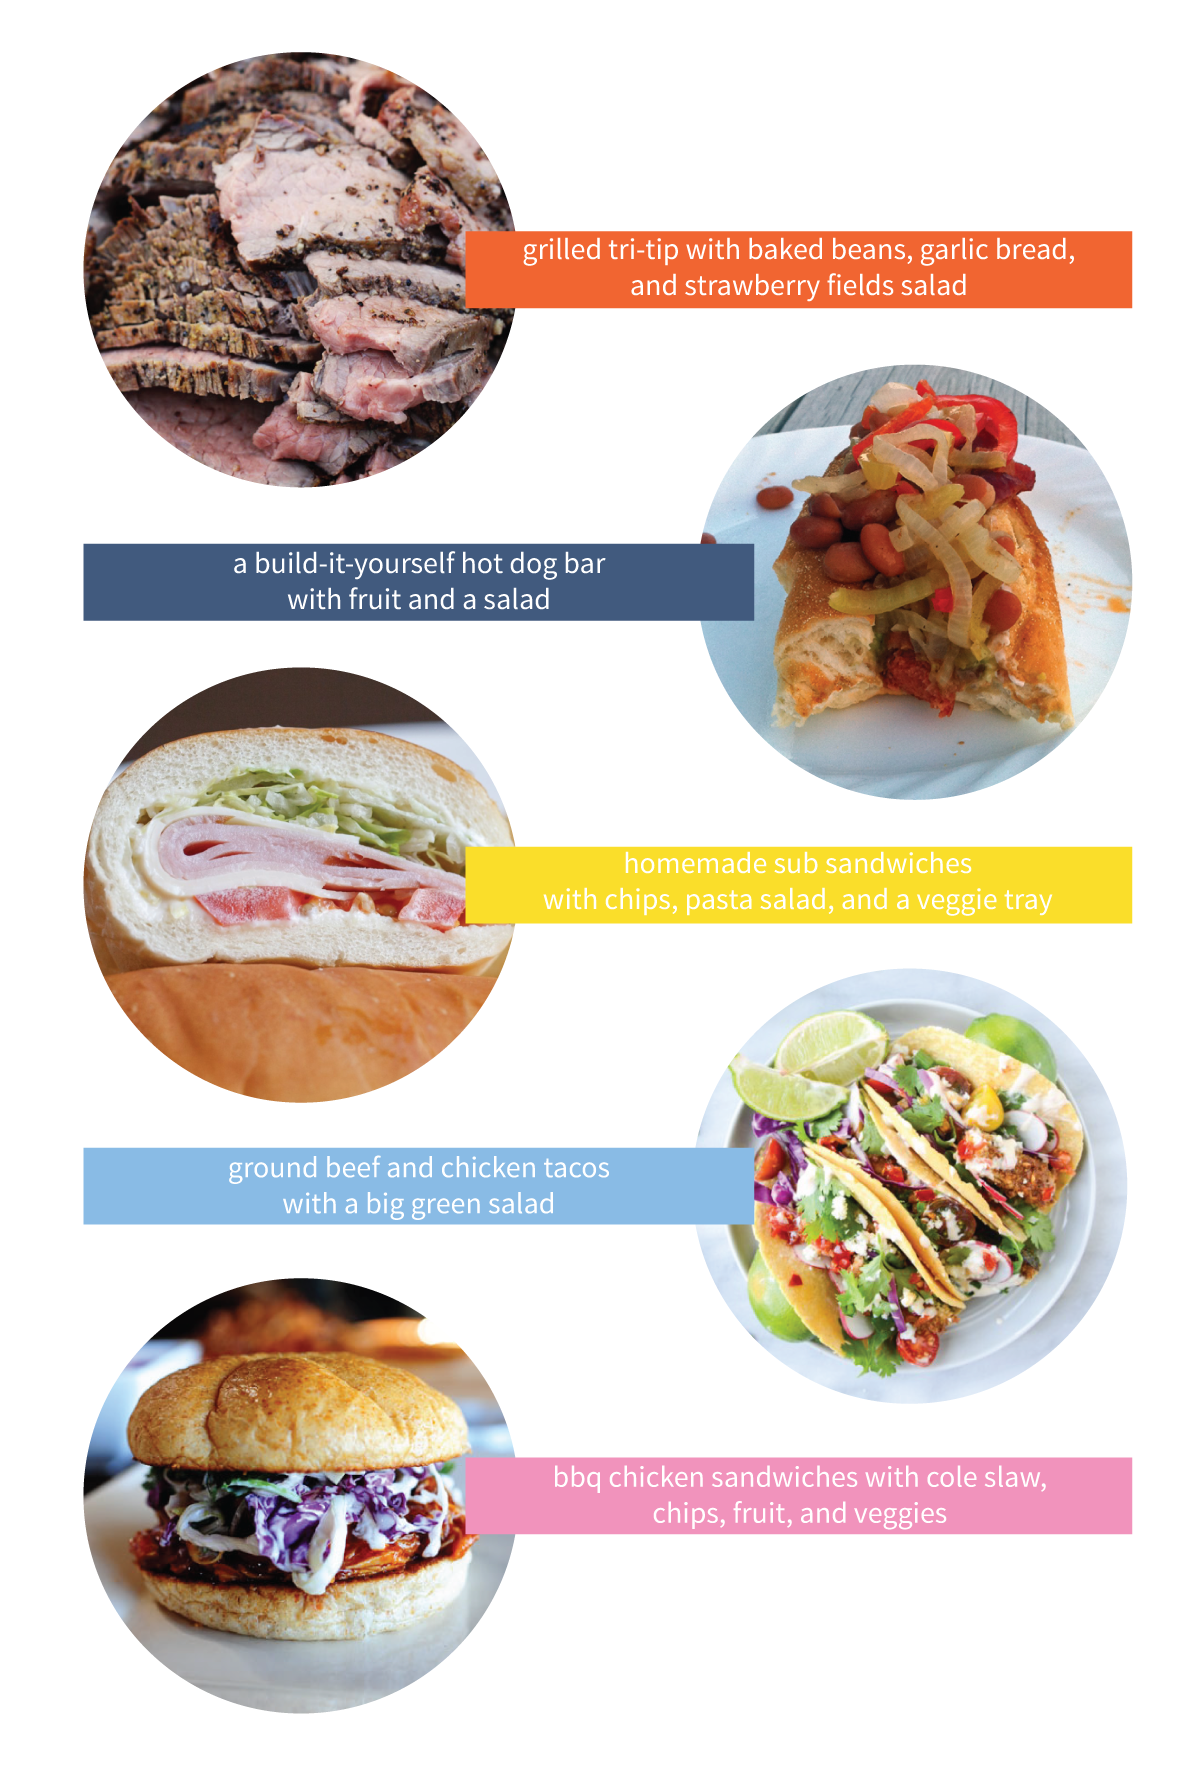 This week's menu ideas features five of our favorite easy summer dinners that are perfect for feeding a crowd. They make great menu choices for family reunions, barbecues, and get-togethers.